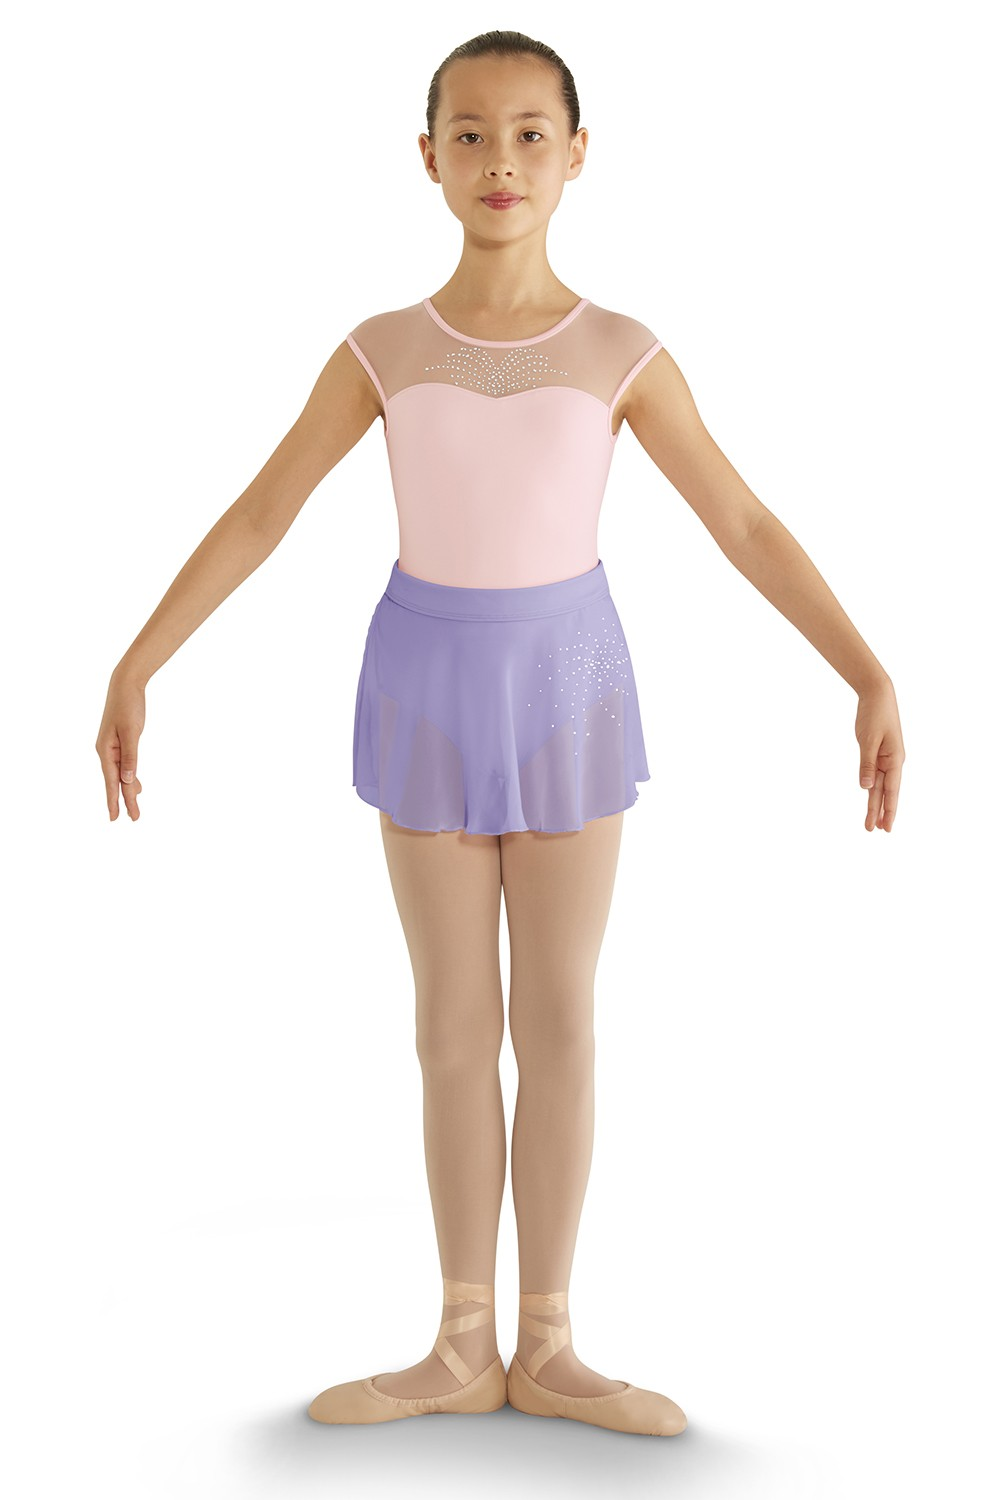 Epsilon Children's Dance Skirts